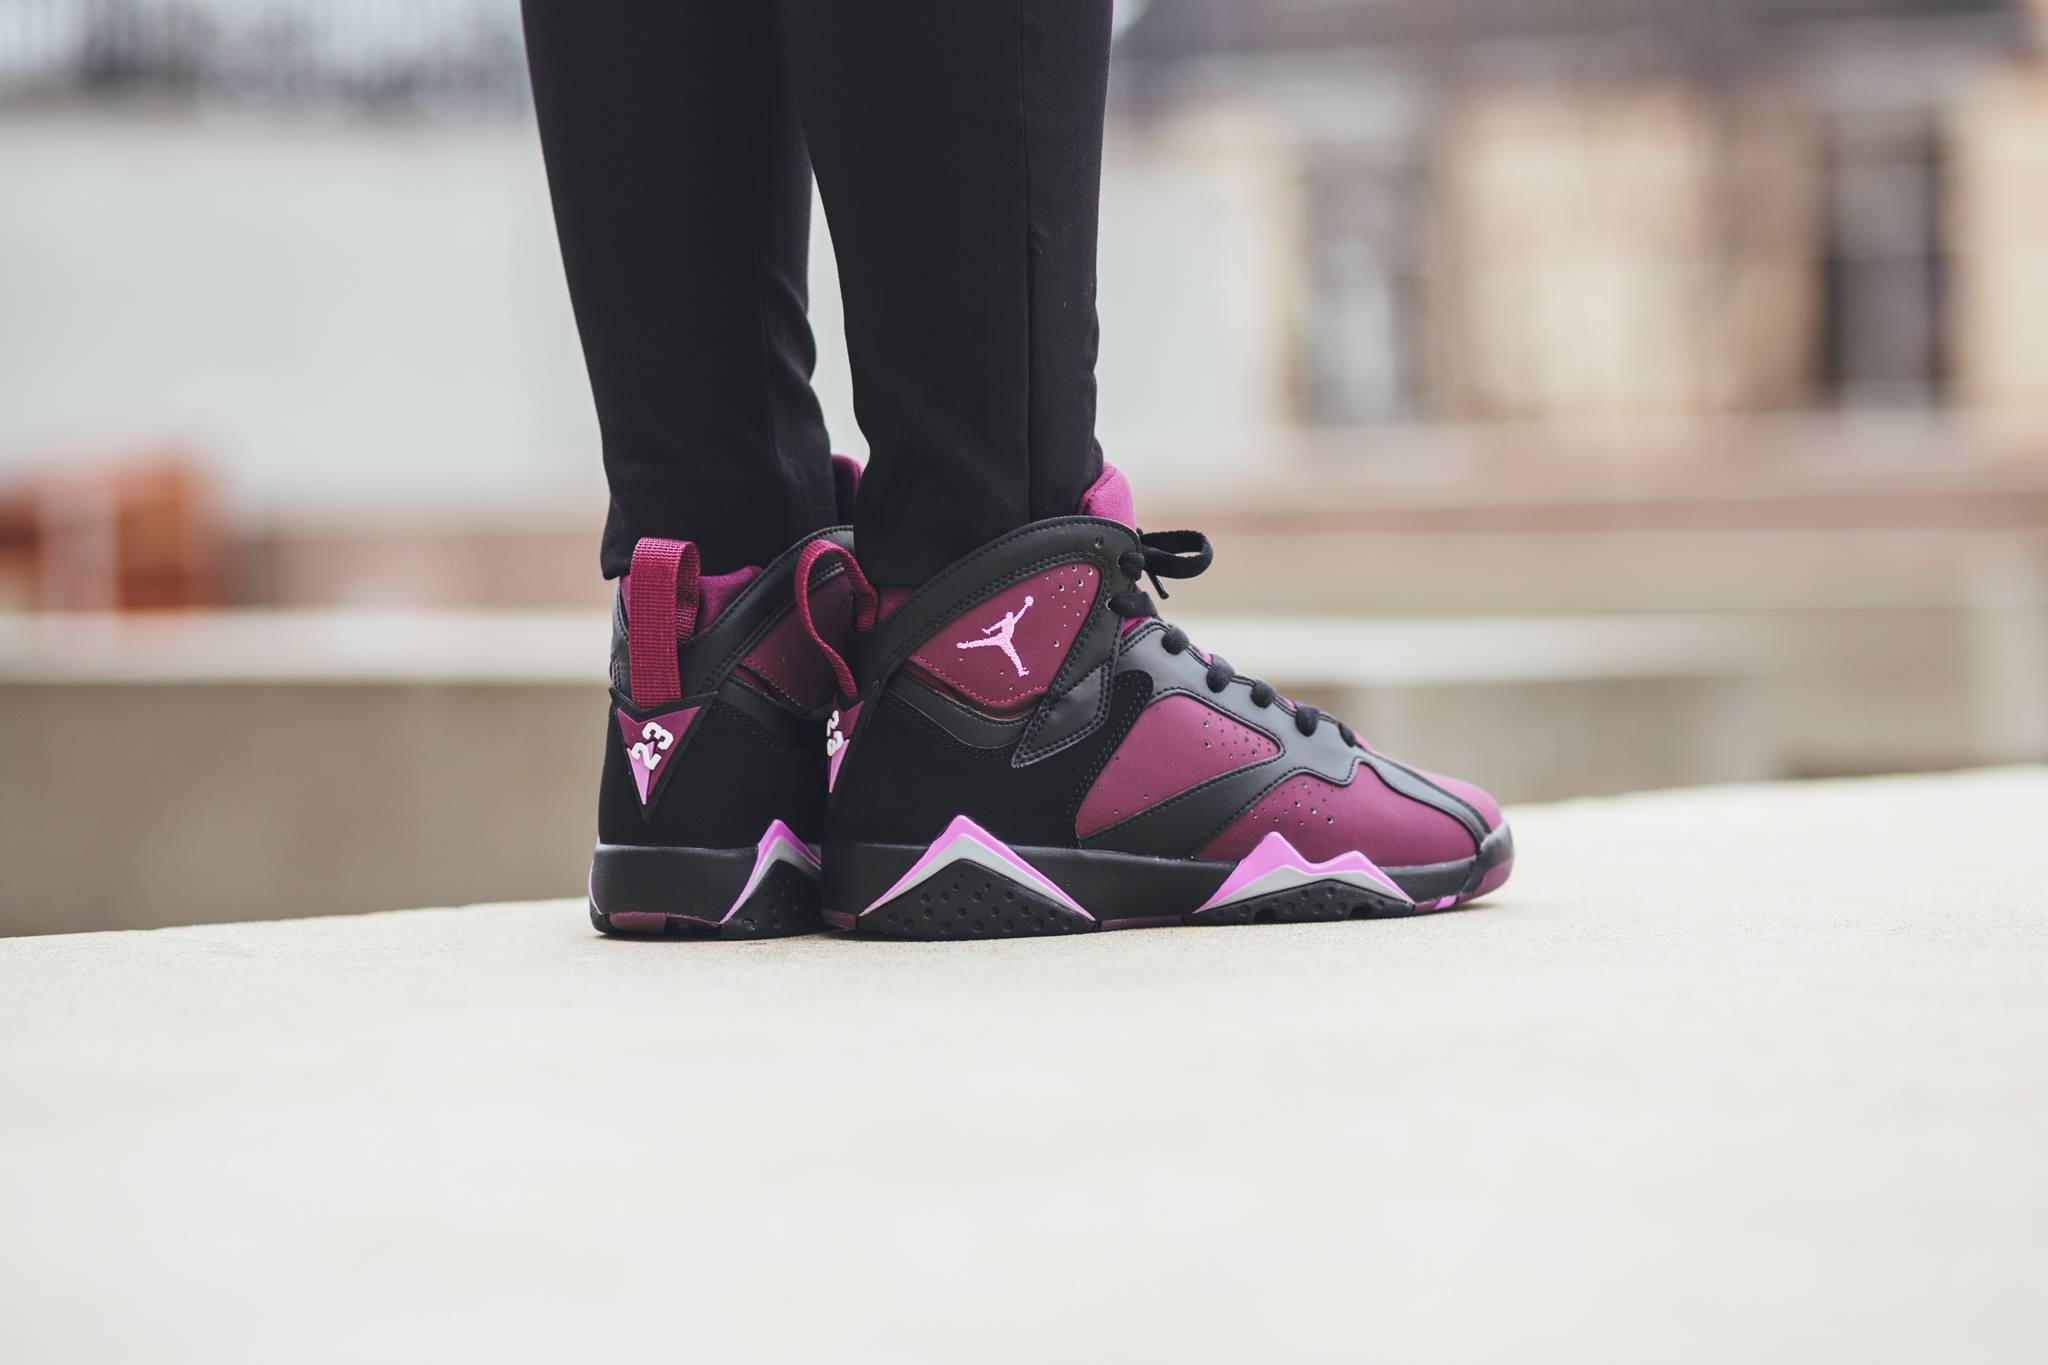 442960-009-air-jordan-7-retro-mulberry-02